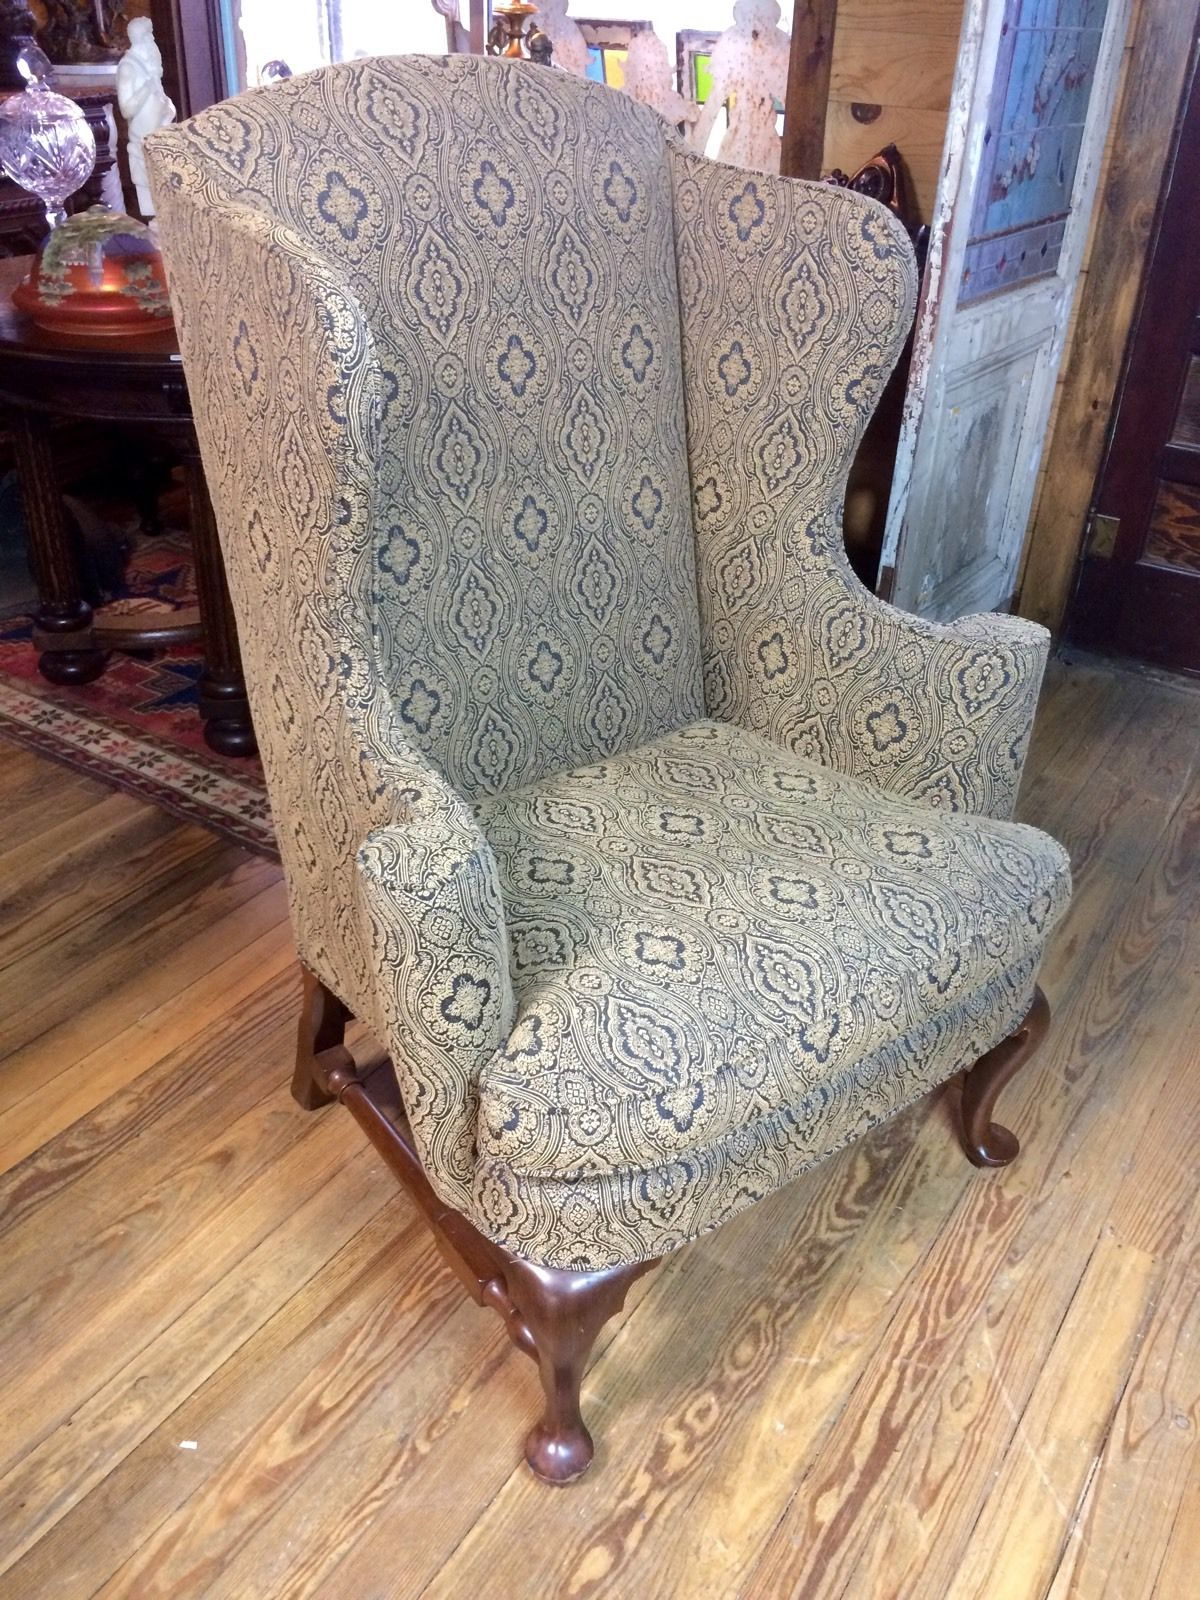 Hickory Chair Company Queen Anne Wing Back Chair - Hickory Chair Company Queen Anne Wing Back Chair Hickory Chair